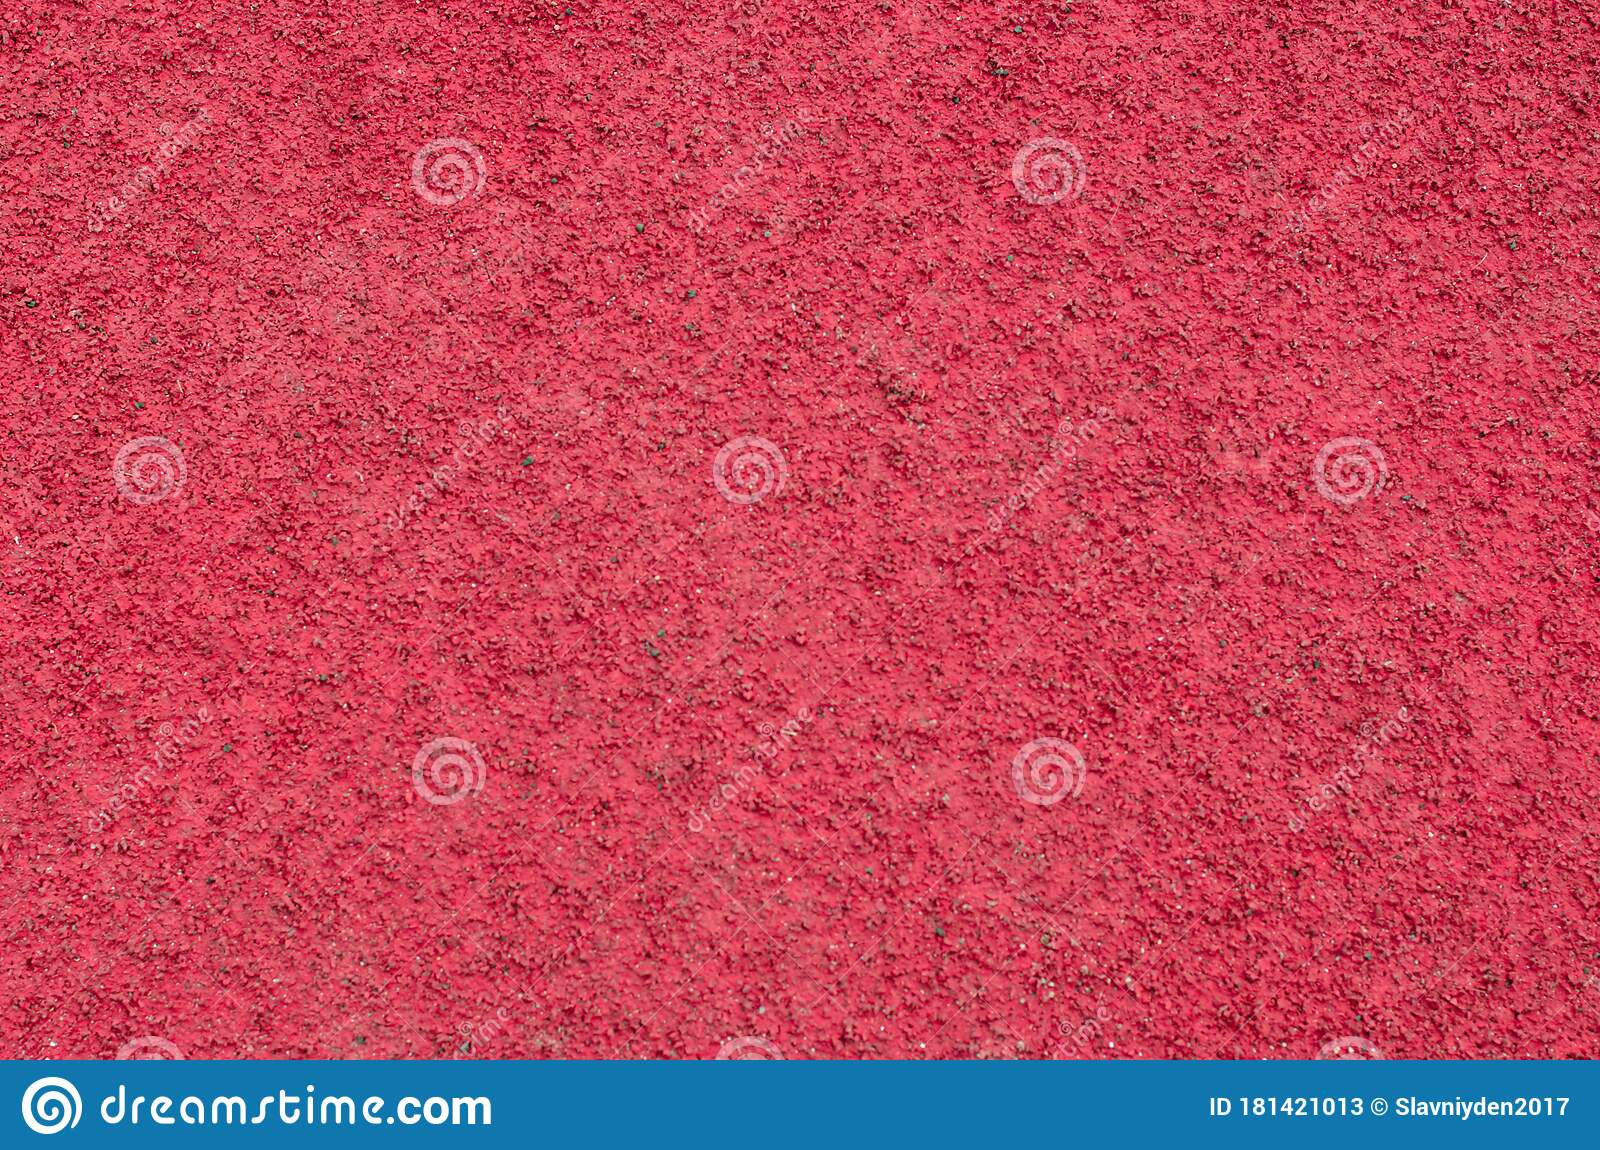 2 239 Backgrounds Burgundy Photos Free Royalty Free Stock Photos From Dreamstime